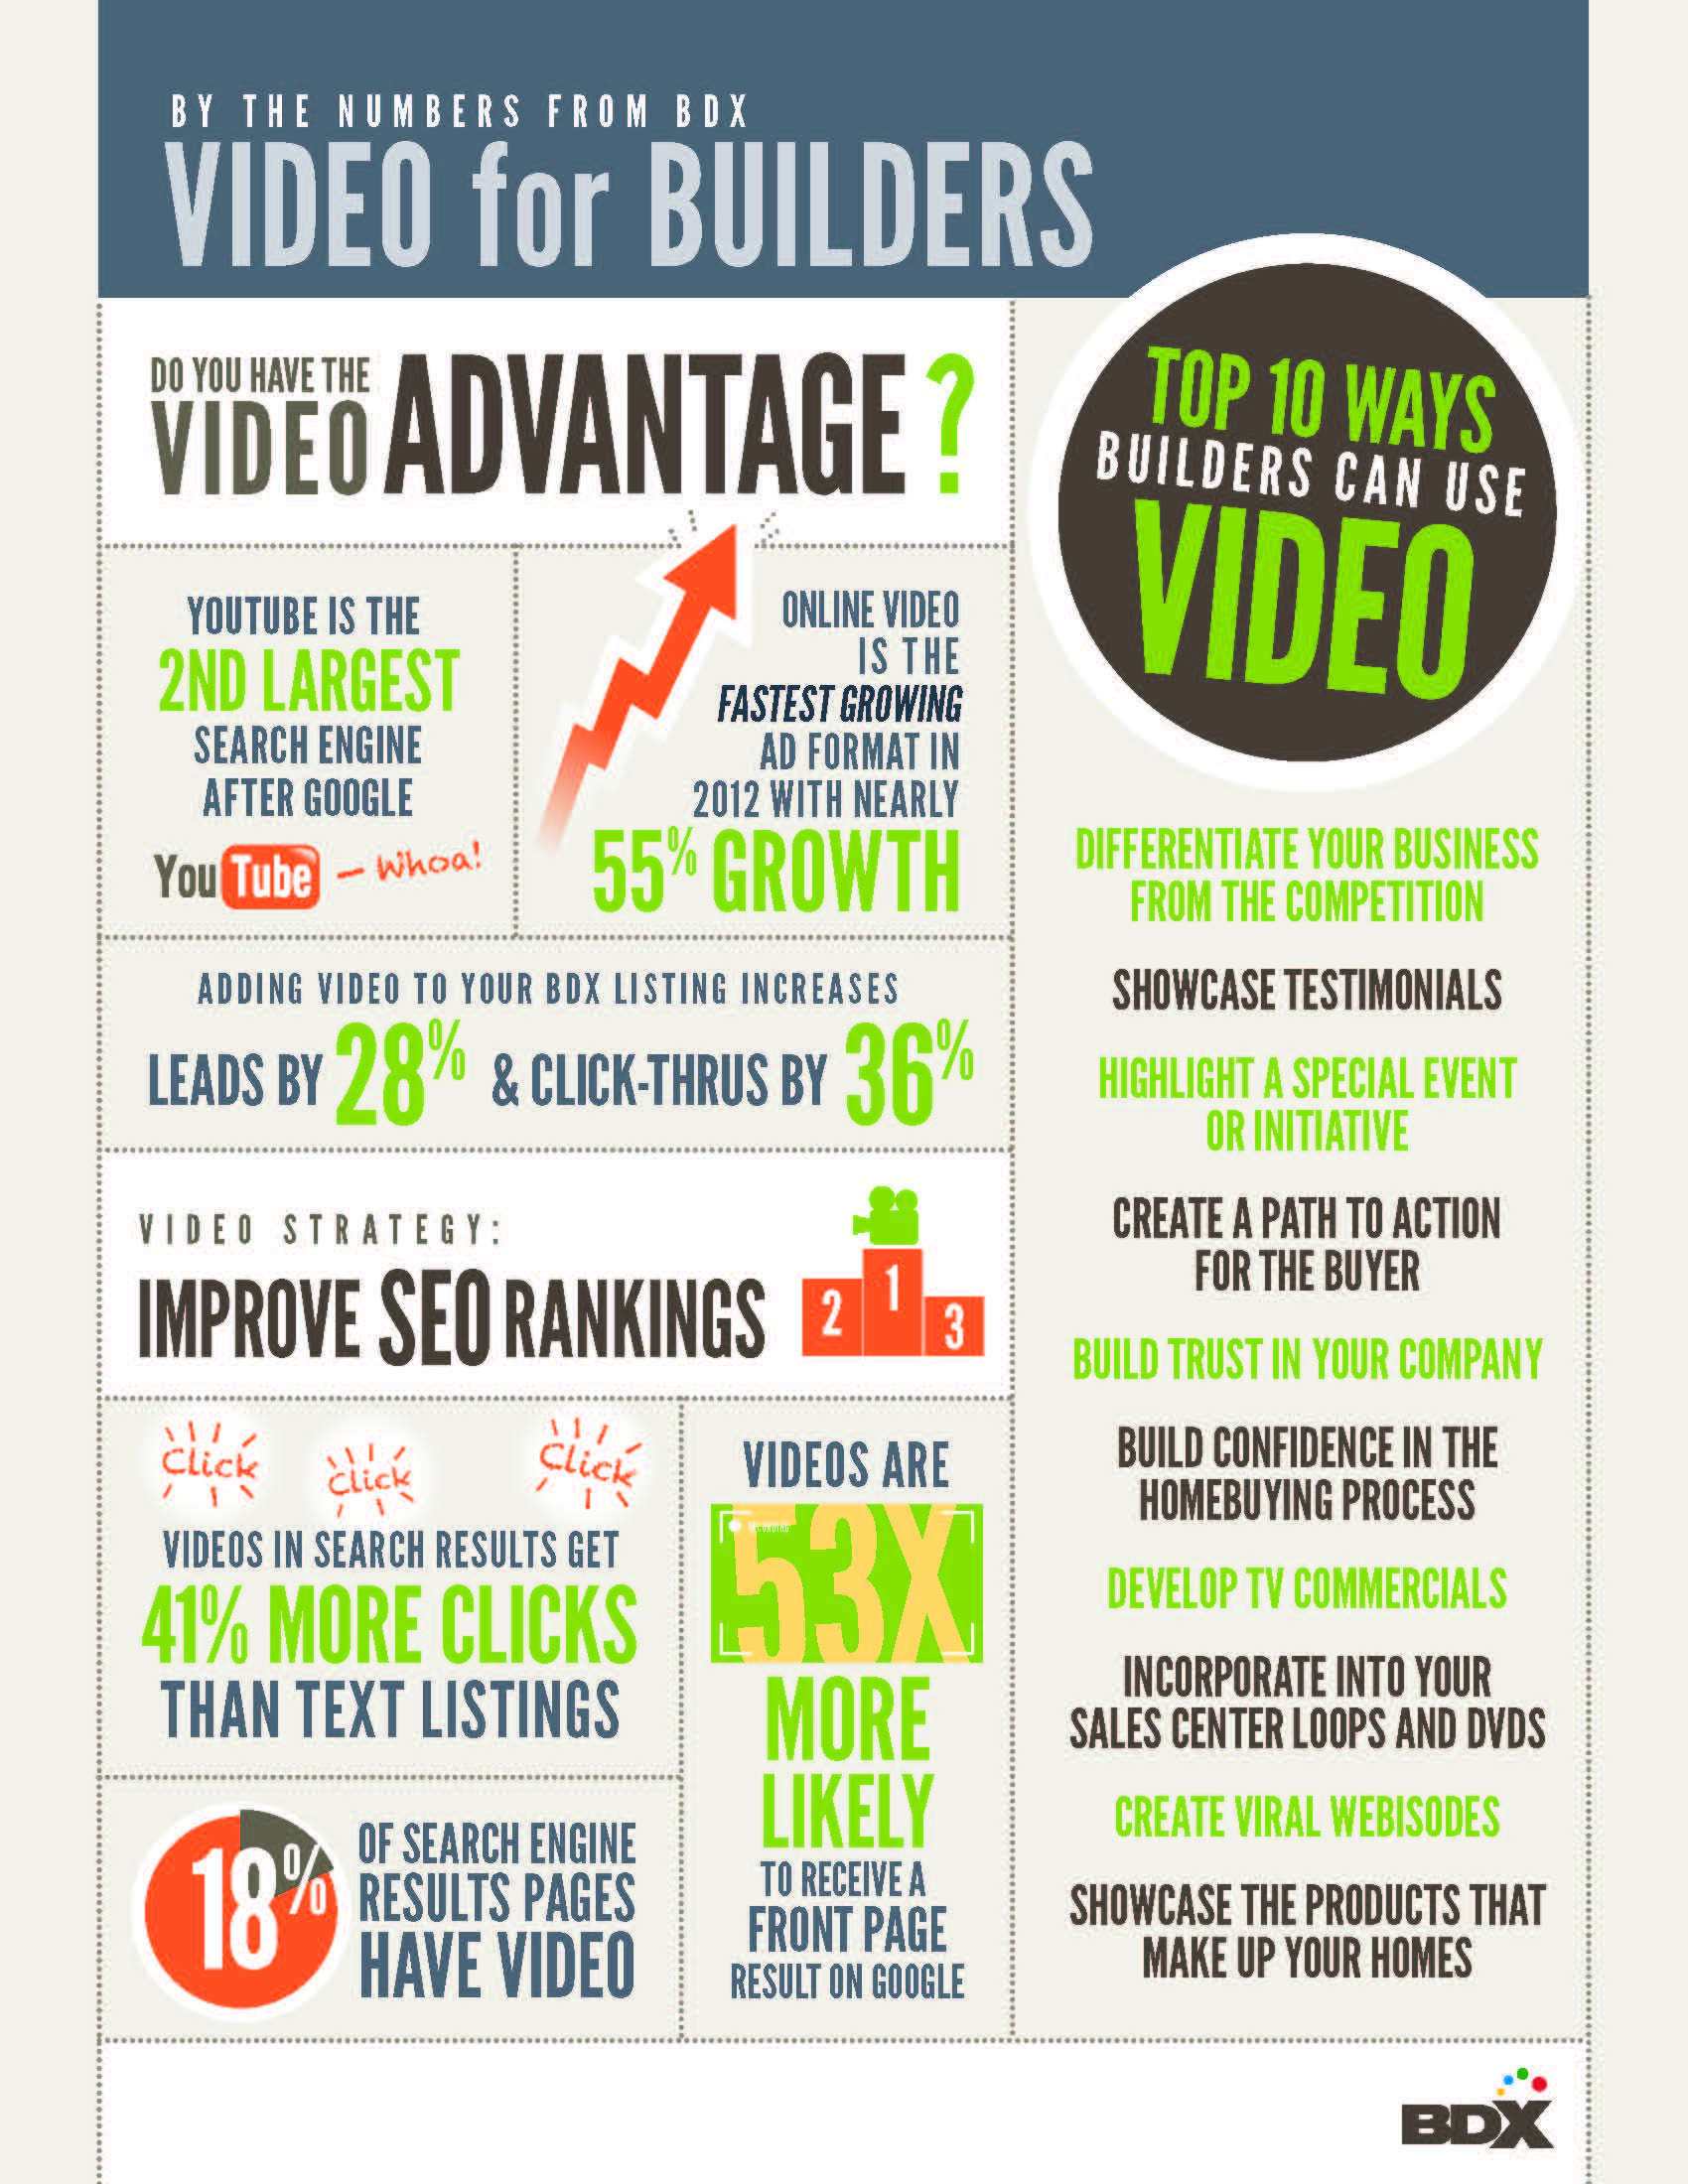 BDX's infographic breaks down the data for using video marketing.